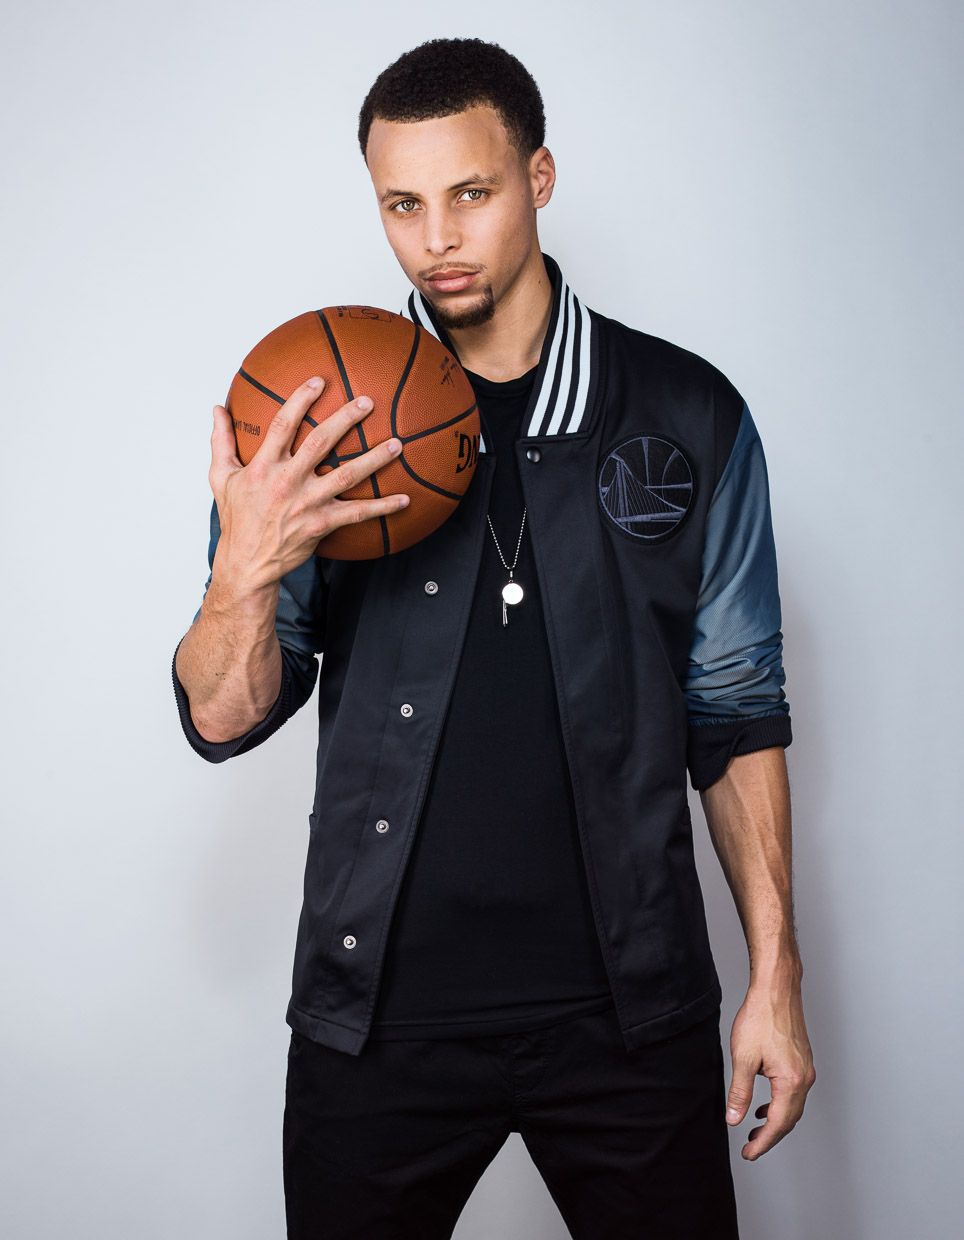 43a521e58ac Steph Curry  The Secret to his Success  Brain Training ..... (..advanced  training drills using technology that allow the brain to be more efficient